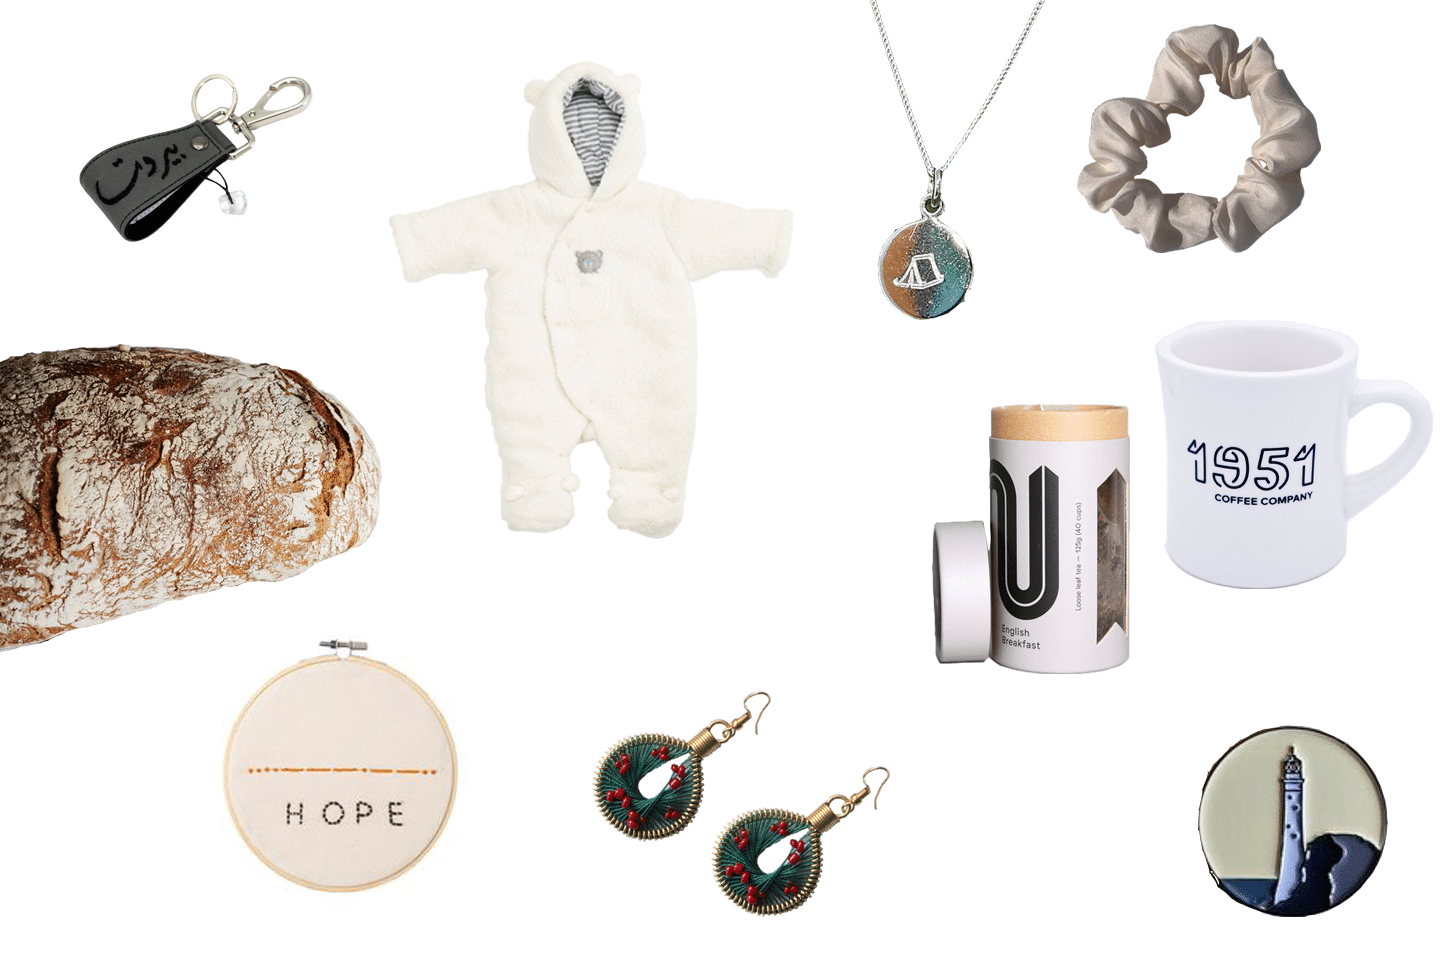 Gifts Supporting Refugees Under £20